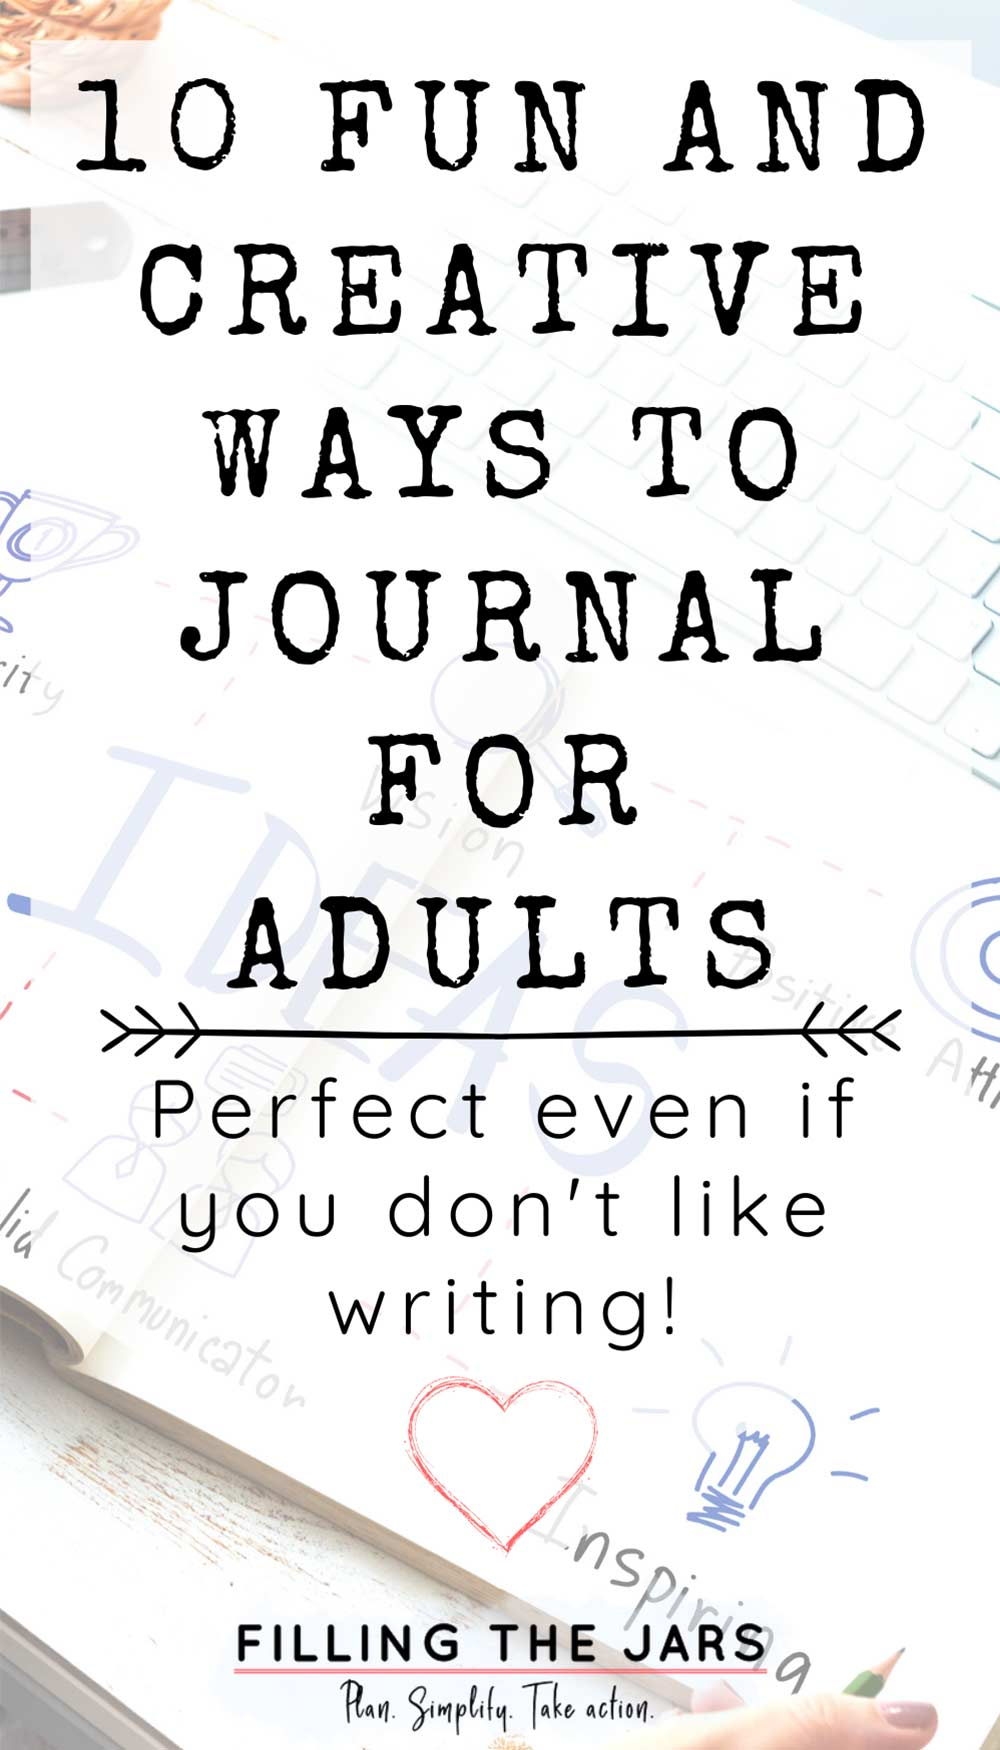 Text creative ways to journal for adults on white background over image of female hand working on mind map journal.